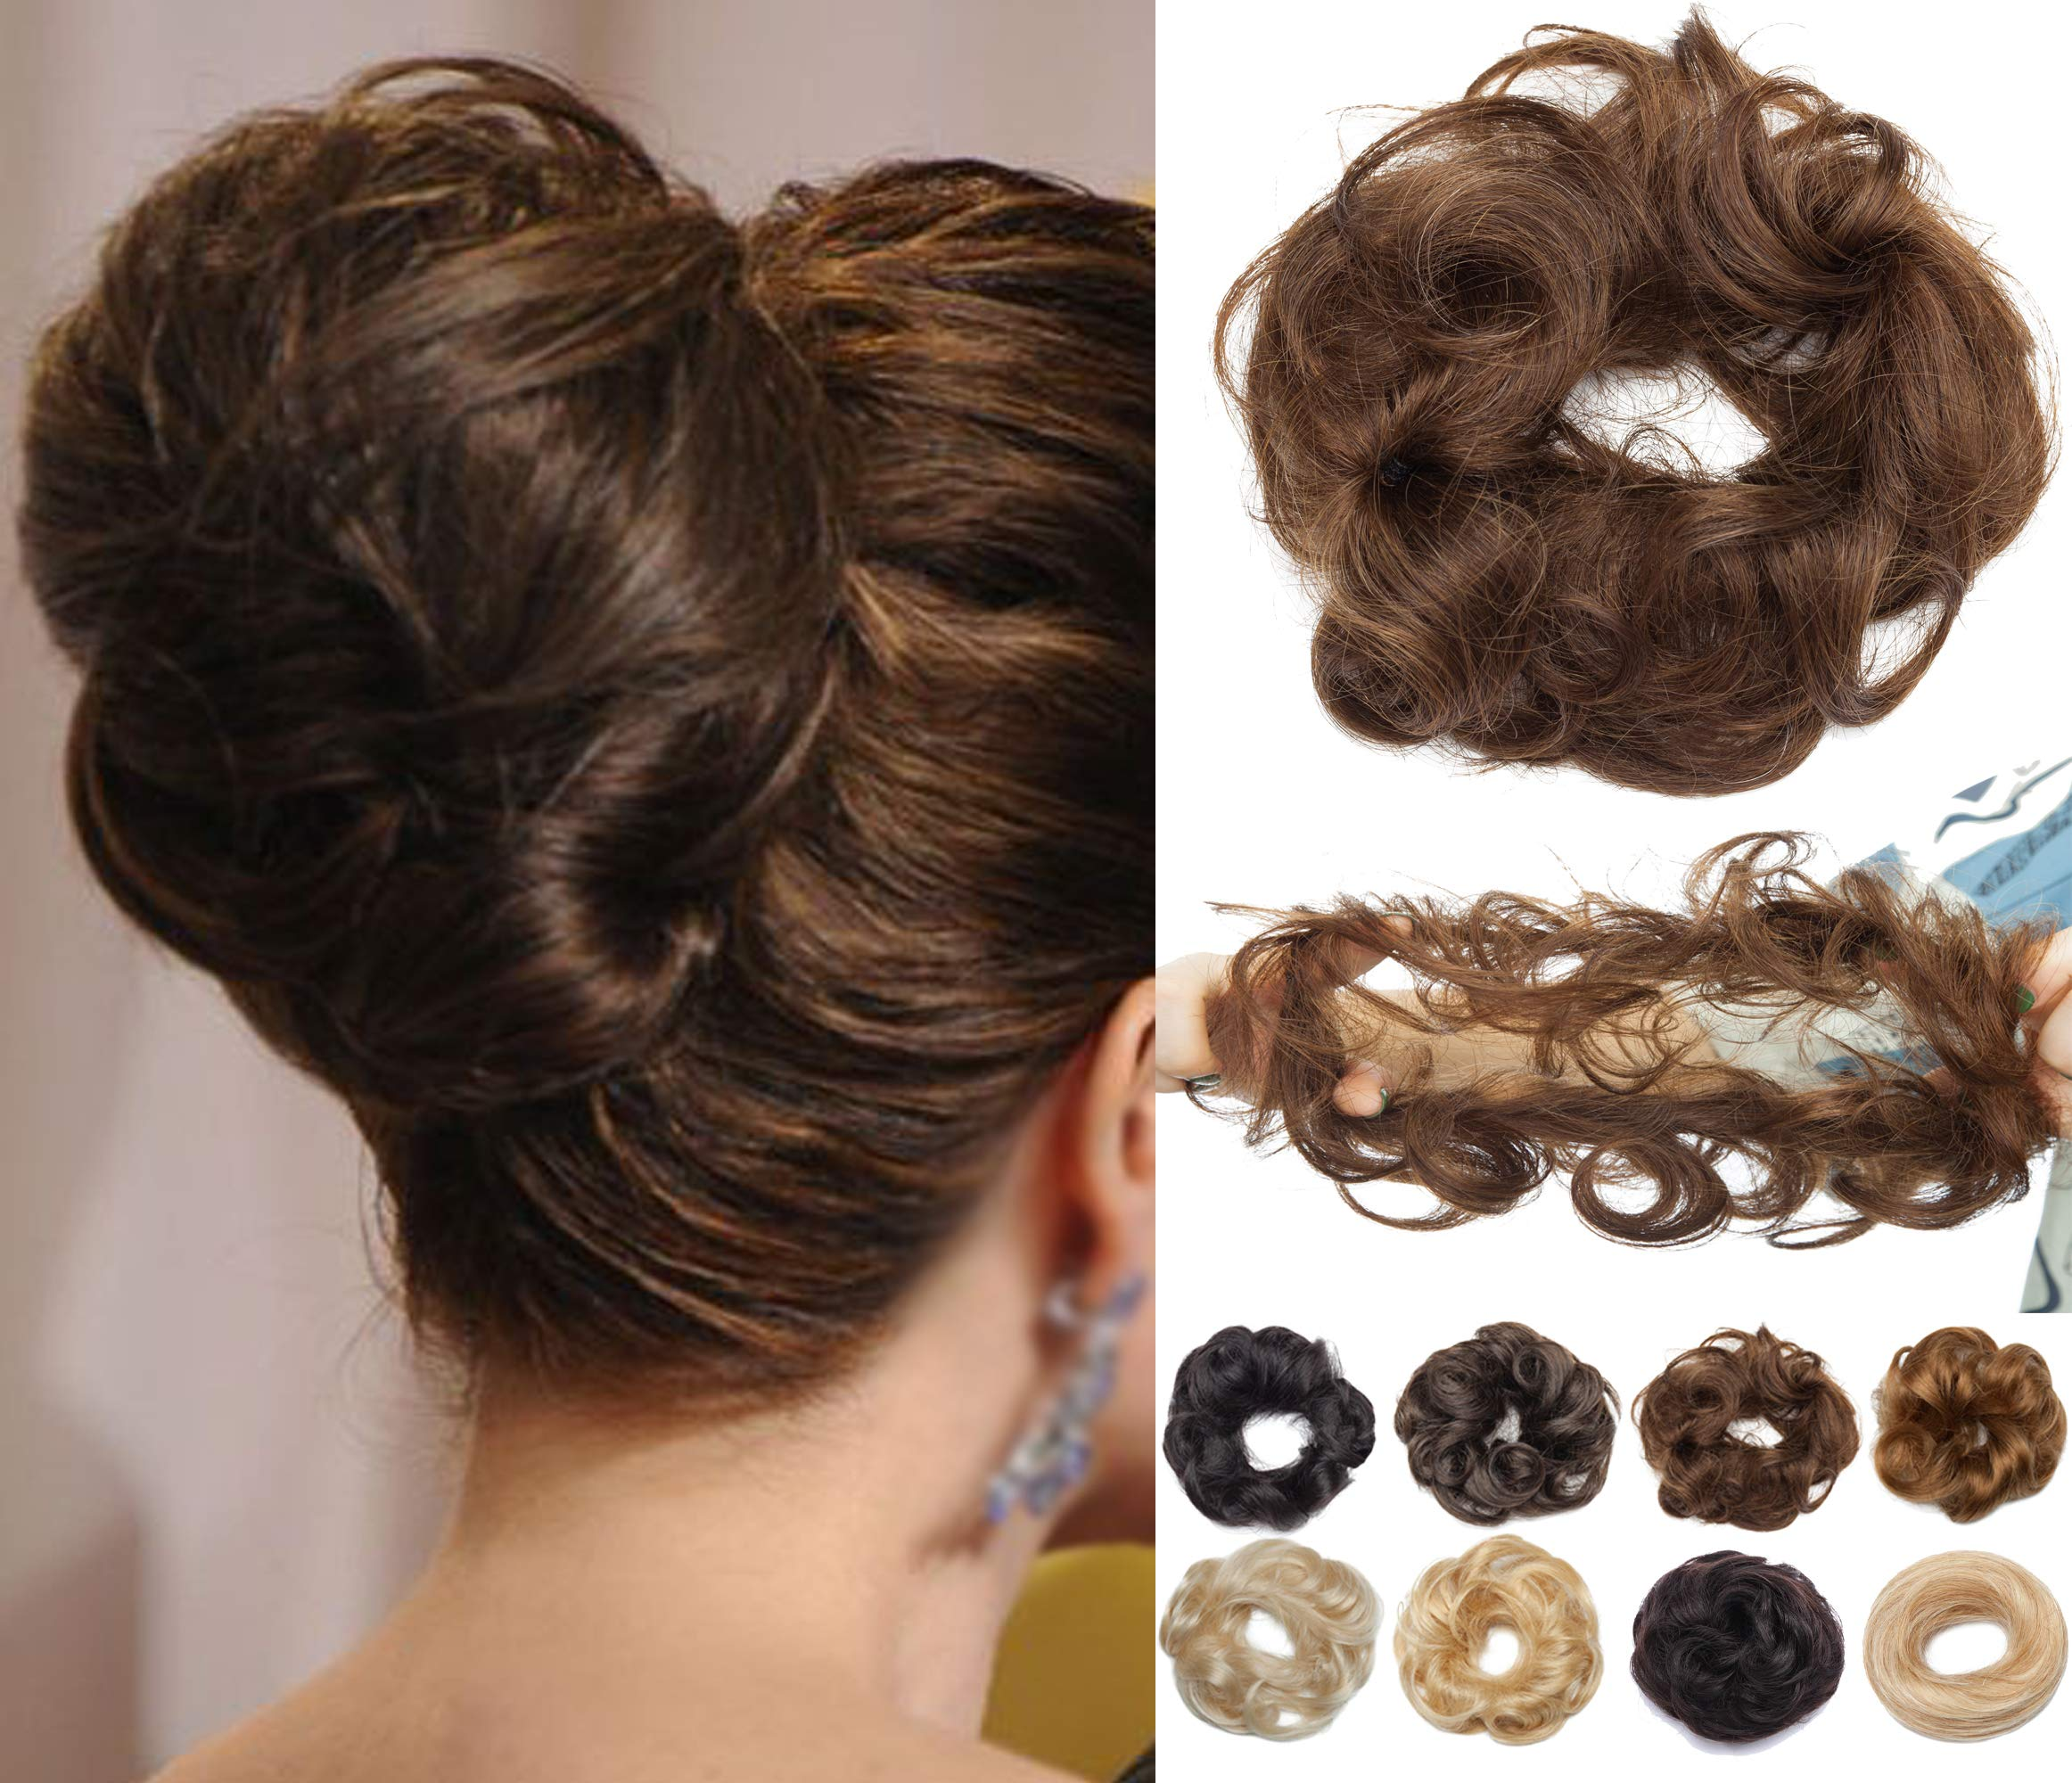 S-noilite 2PCS Scrunchies Extensions Real Human Hair Curly Wavy Elegant Chignons Messy Updo for Women Kids Donut Bun Extensions Wedding Hair Piece #04 Medium Brown-Wave